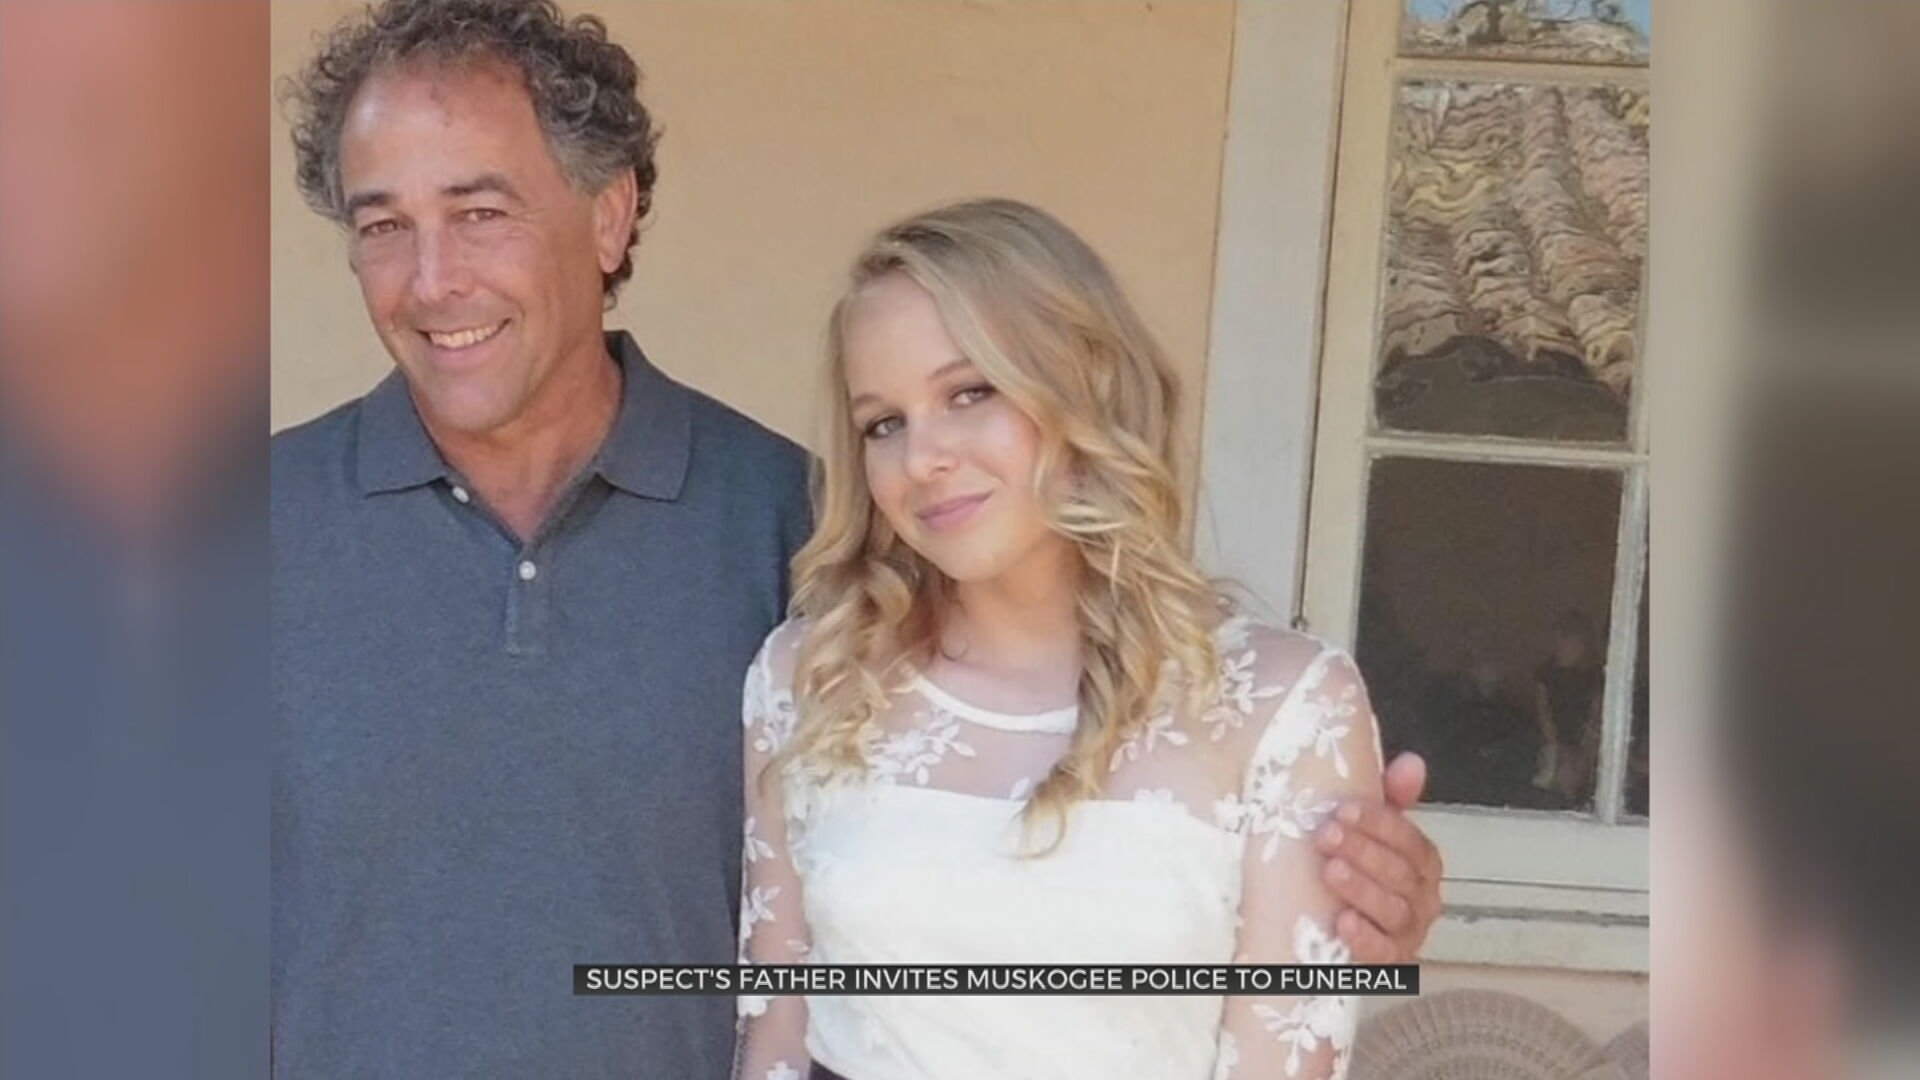 Father Of 17-Year-Old Girl Killed By Muskogee Police Invites Officers To Her Funeral, Extends Forgiveness